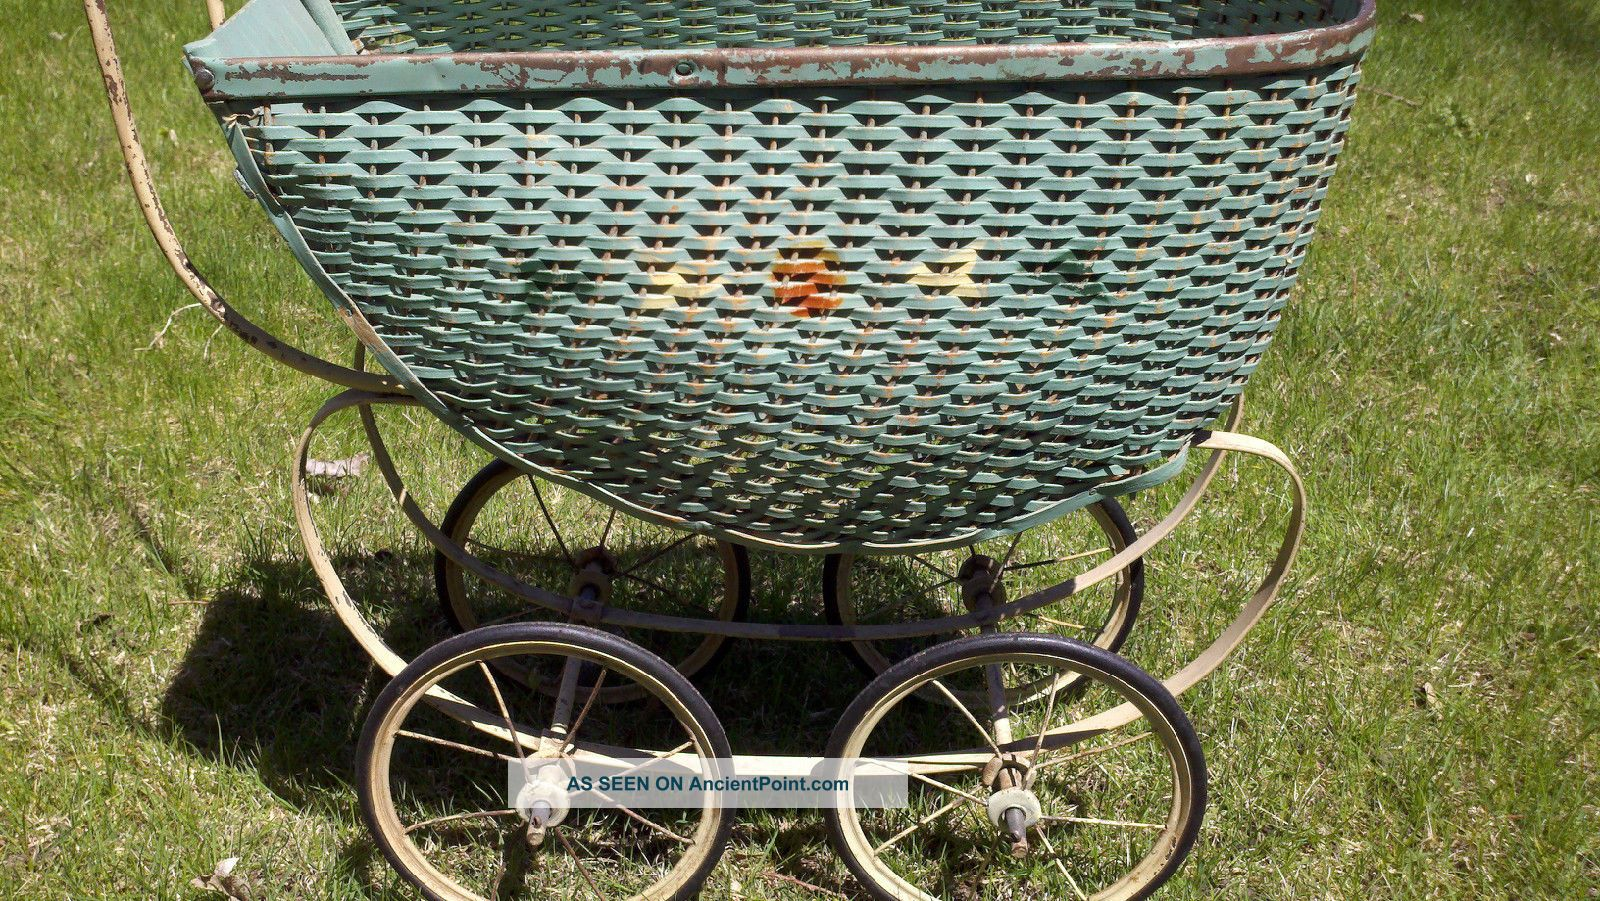 Antique Green Wicker Baby Buggy Carriage Stroller Great Photo Prop Or Display Baby Carriages & Buggies photo